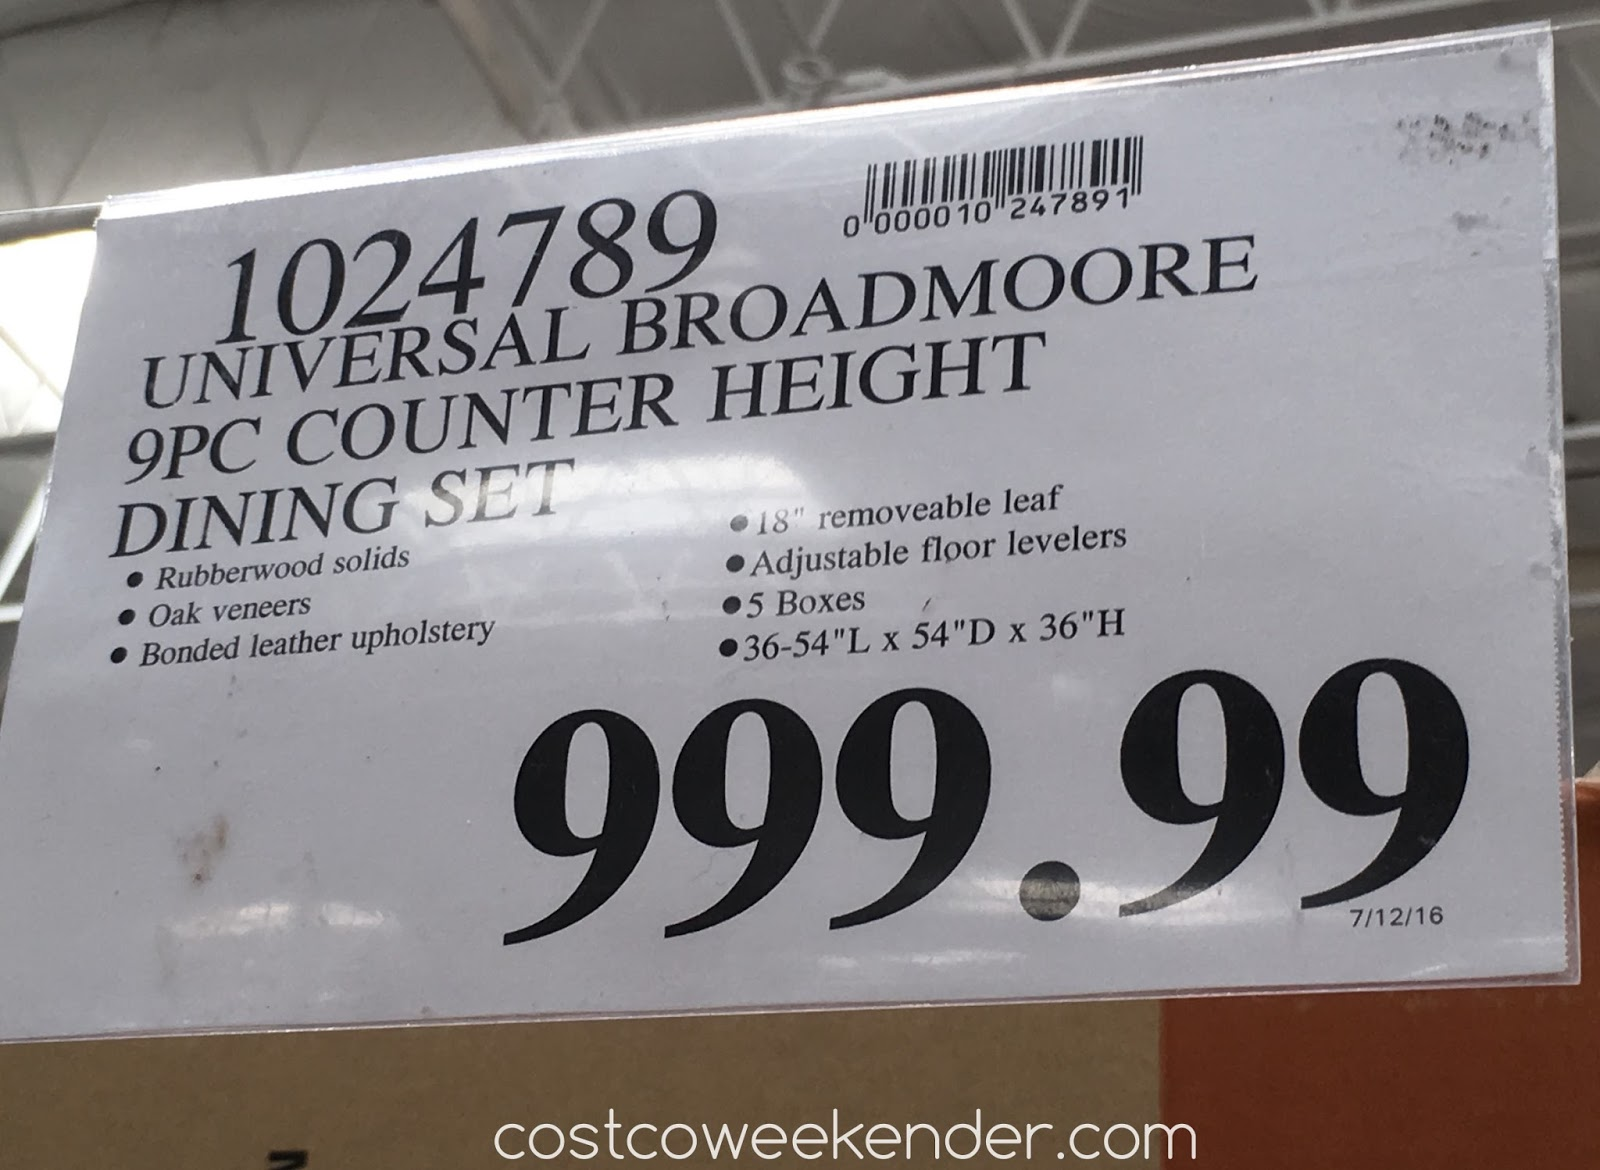 universal furniture broadmoore 9pc counter height dining set costco 1024789 deal for the universal broadmoore counter height dining set at costco